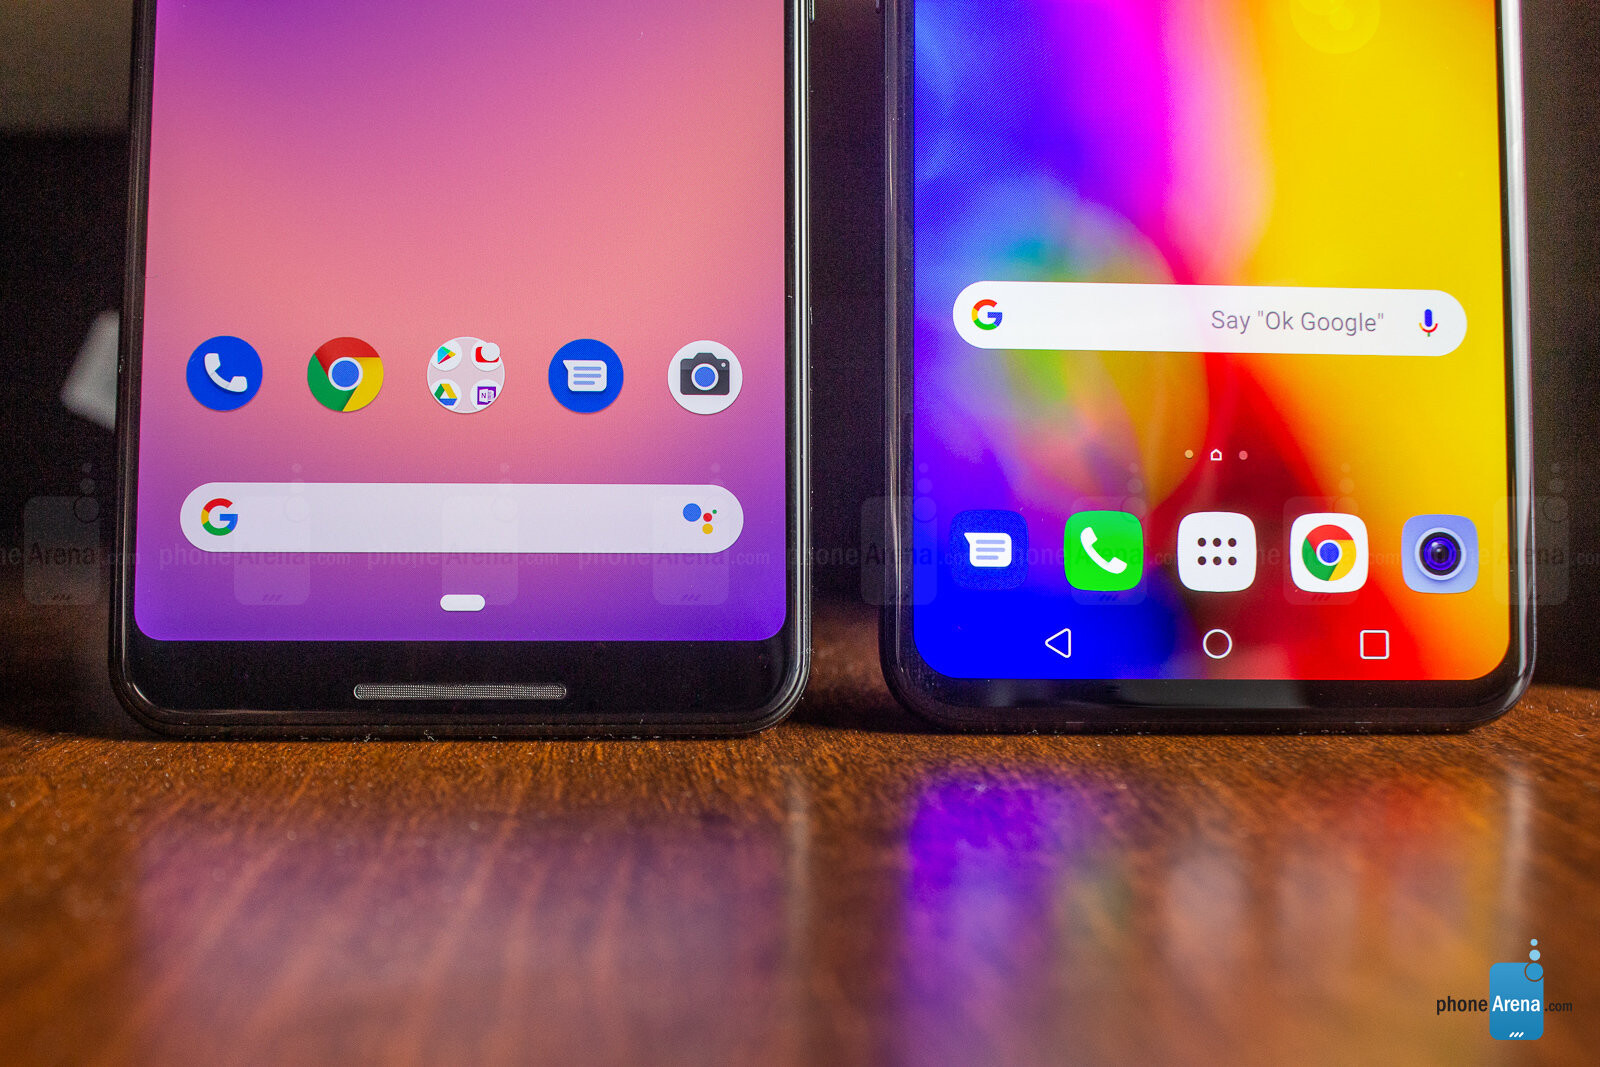 Google Pixel 3 XL - left, LG V40 ThinQ - right